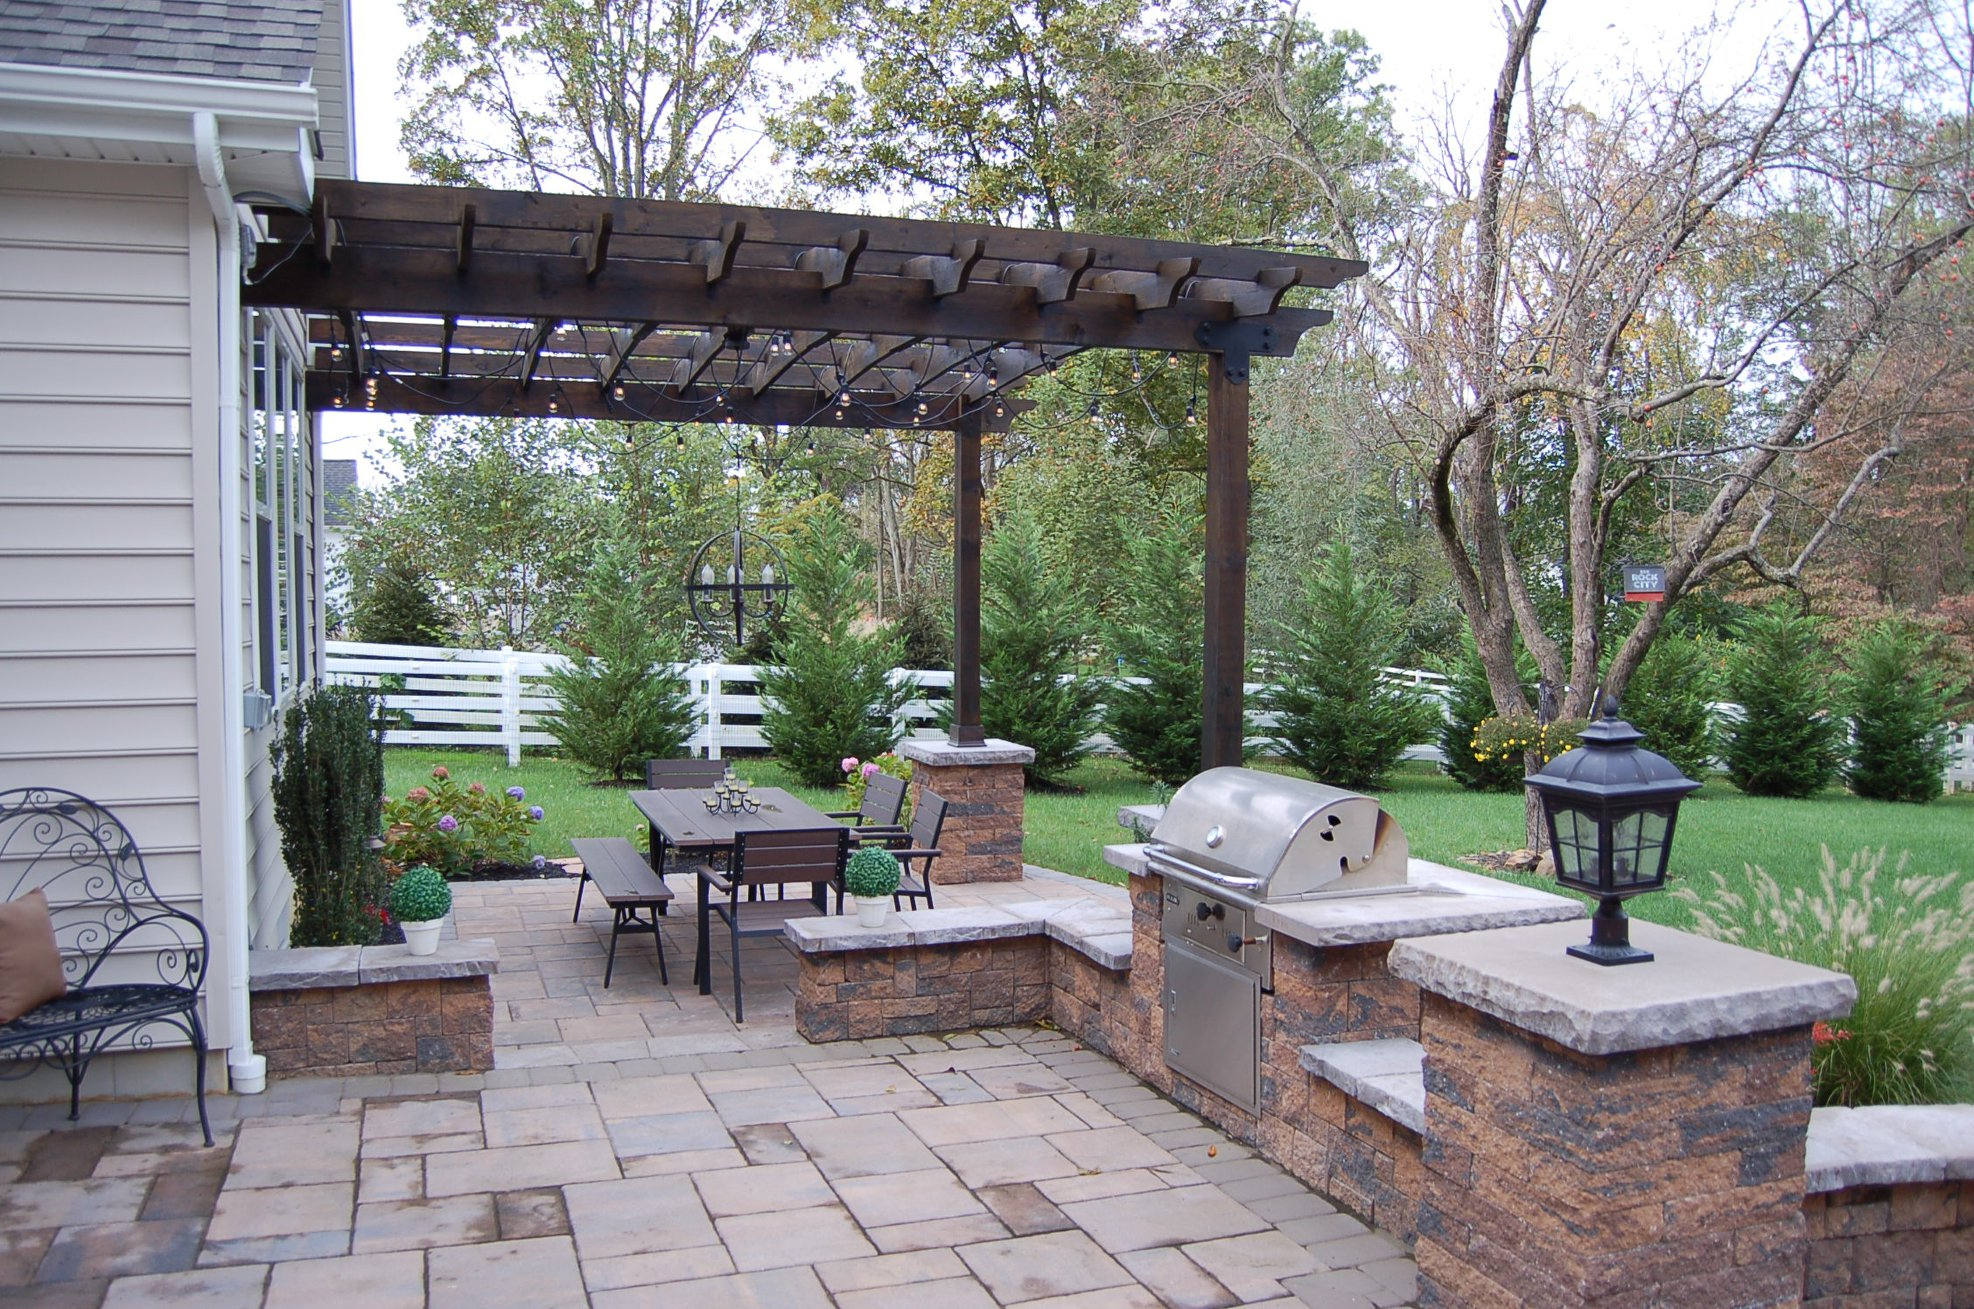 How To Install A Pergola On A Paver Patio - Holiday Hours